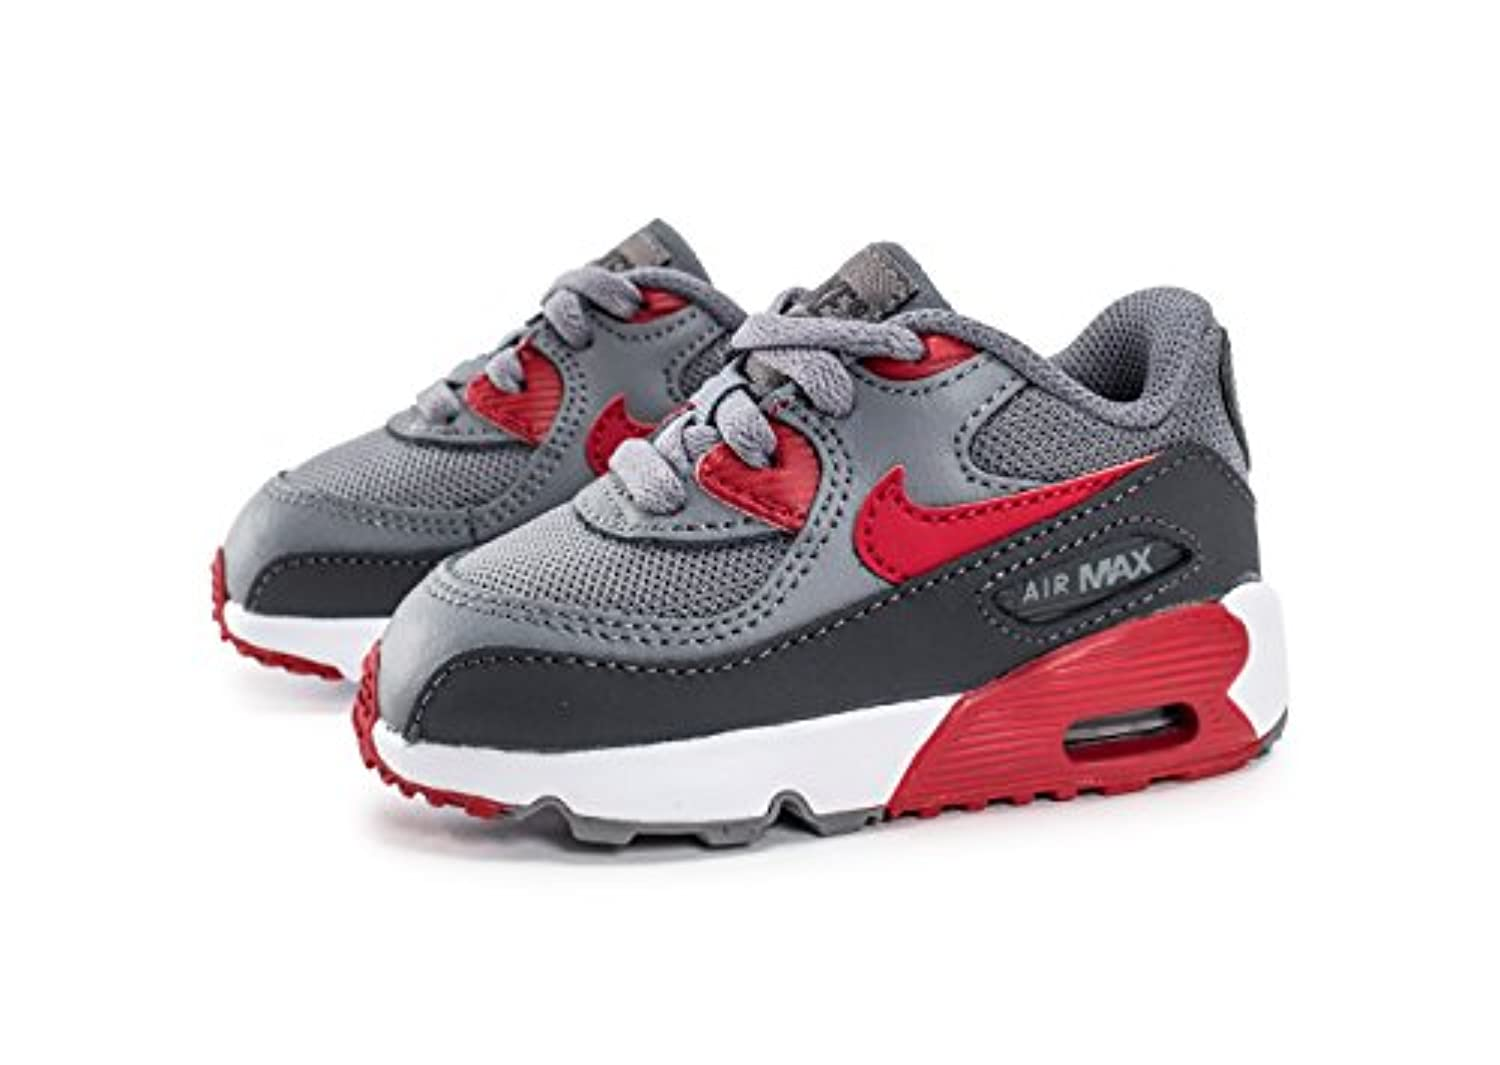 Infant's NIKE Air Max 90 Mesh Trainers (UK 3.5 Toddler)